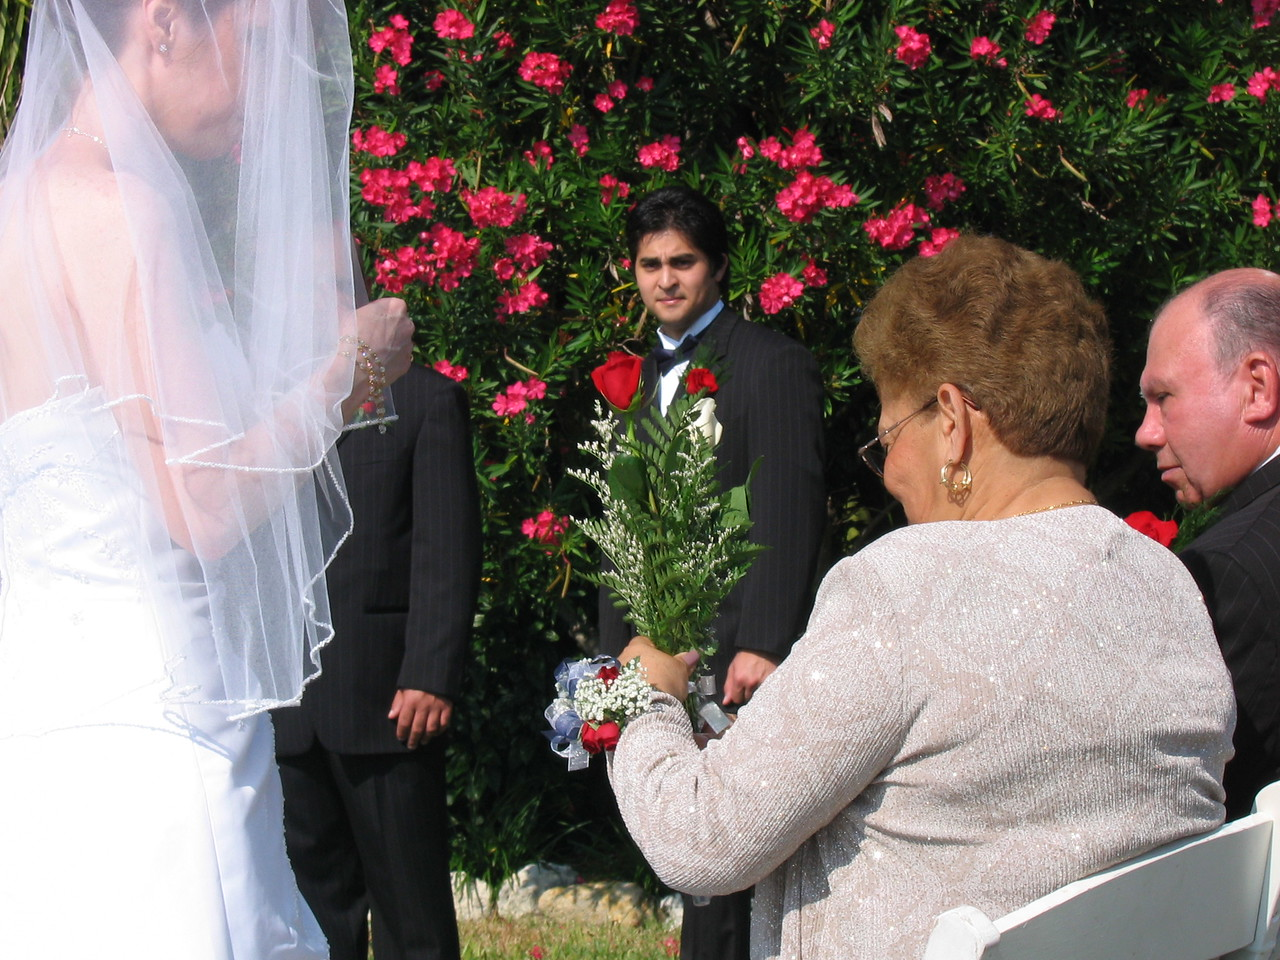 Michele gives mom her roses during the Rose ceremony.